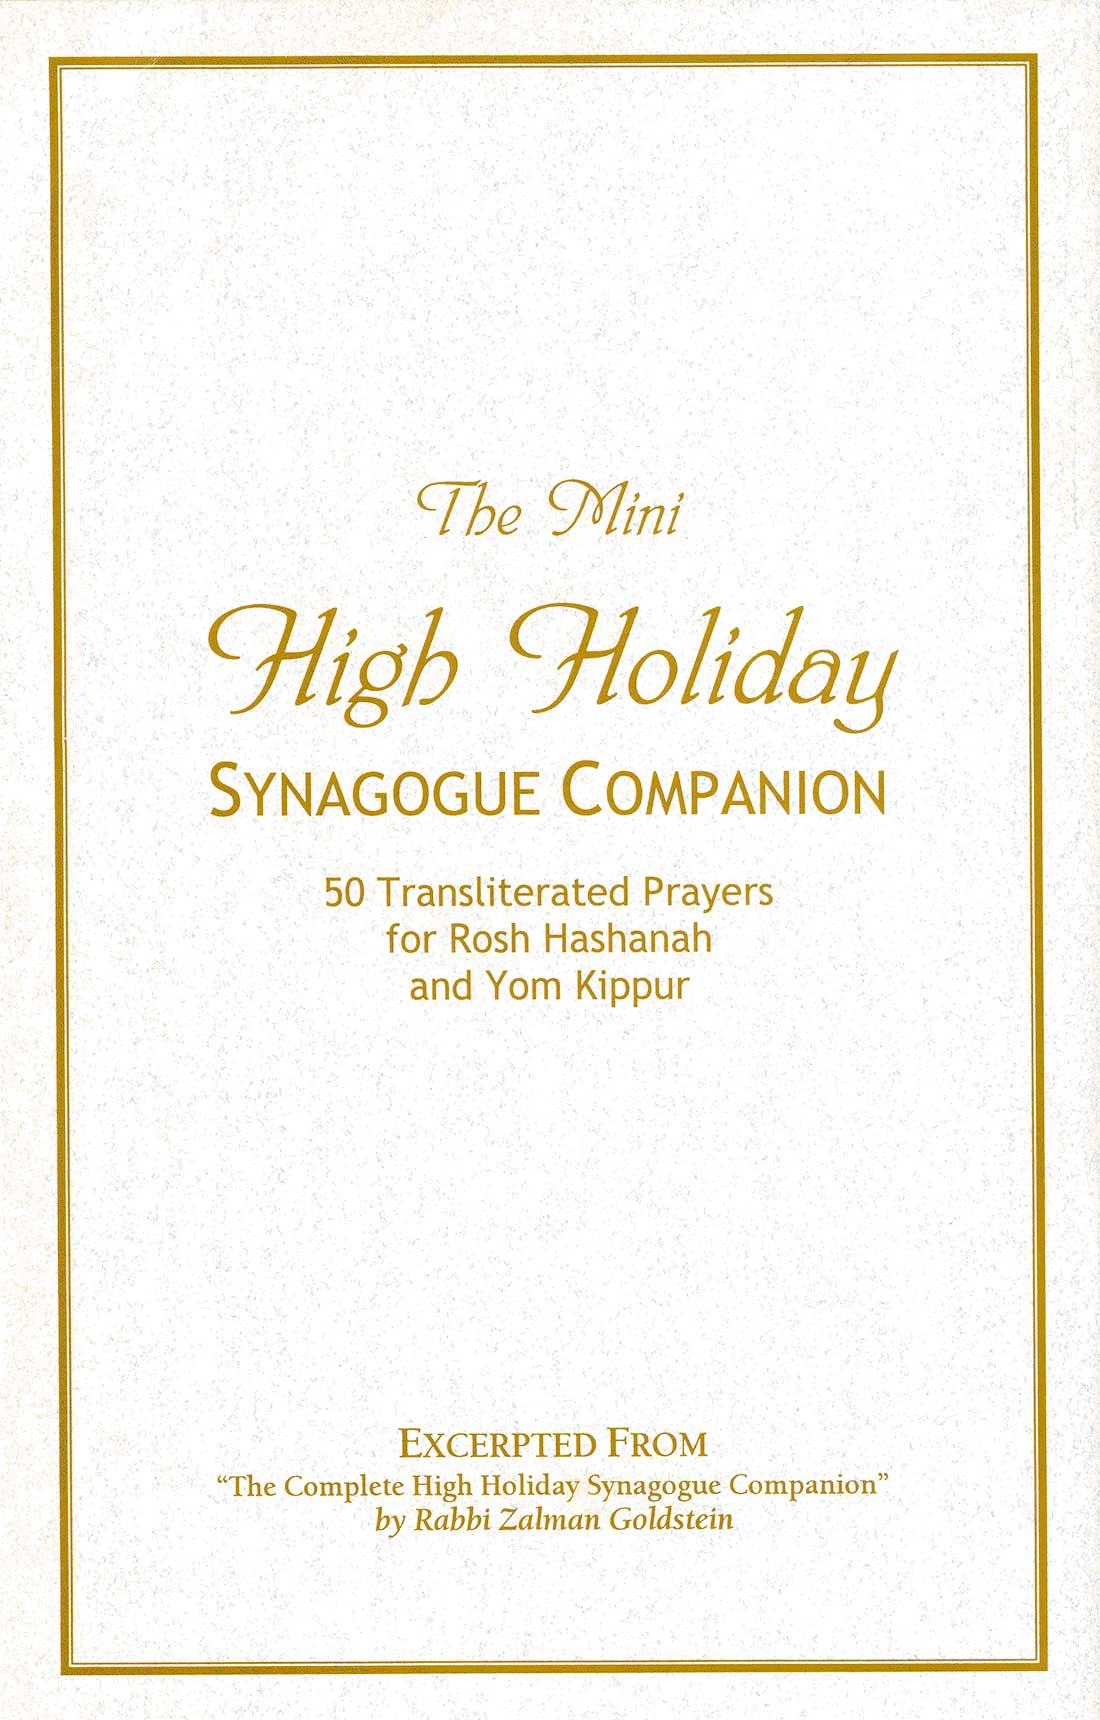 The High Holiday Synagogue Companion Excerpt Edition